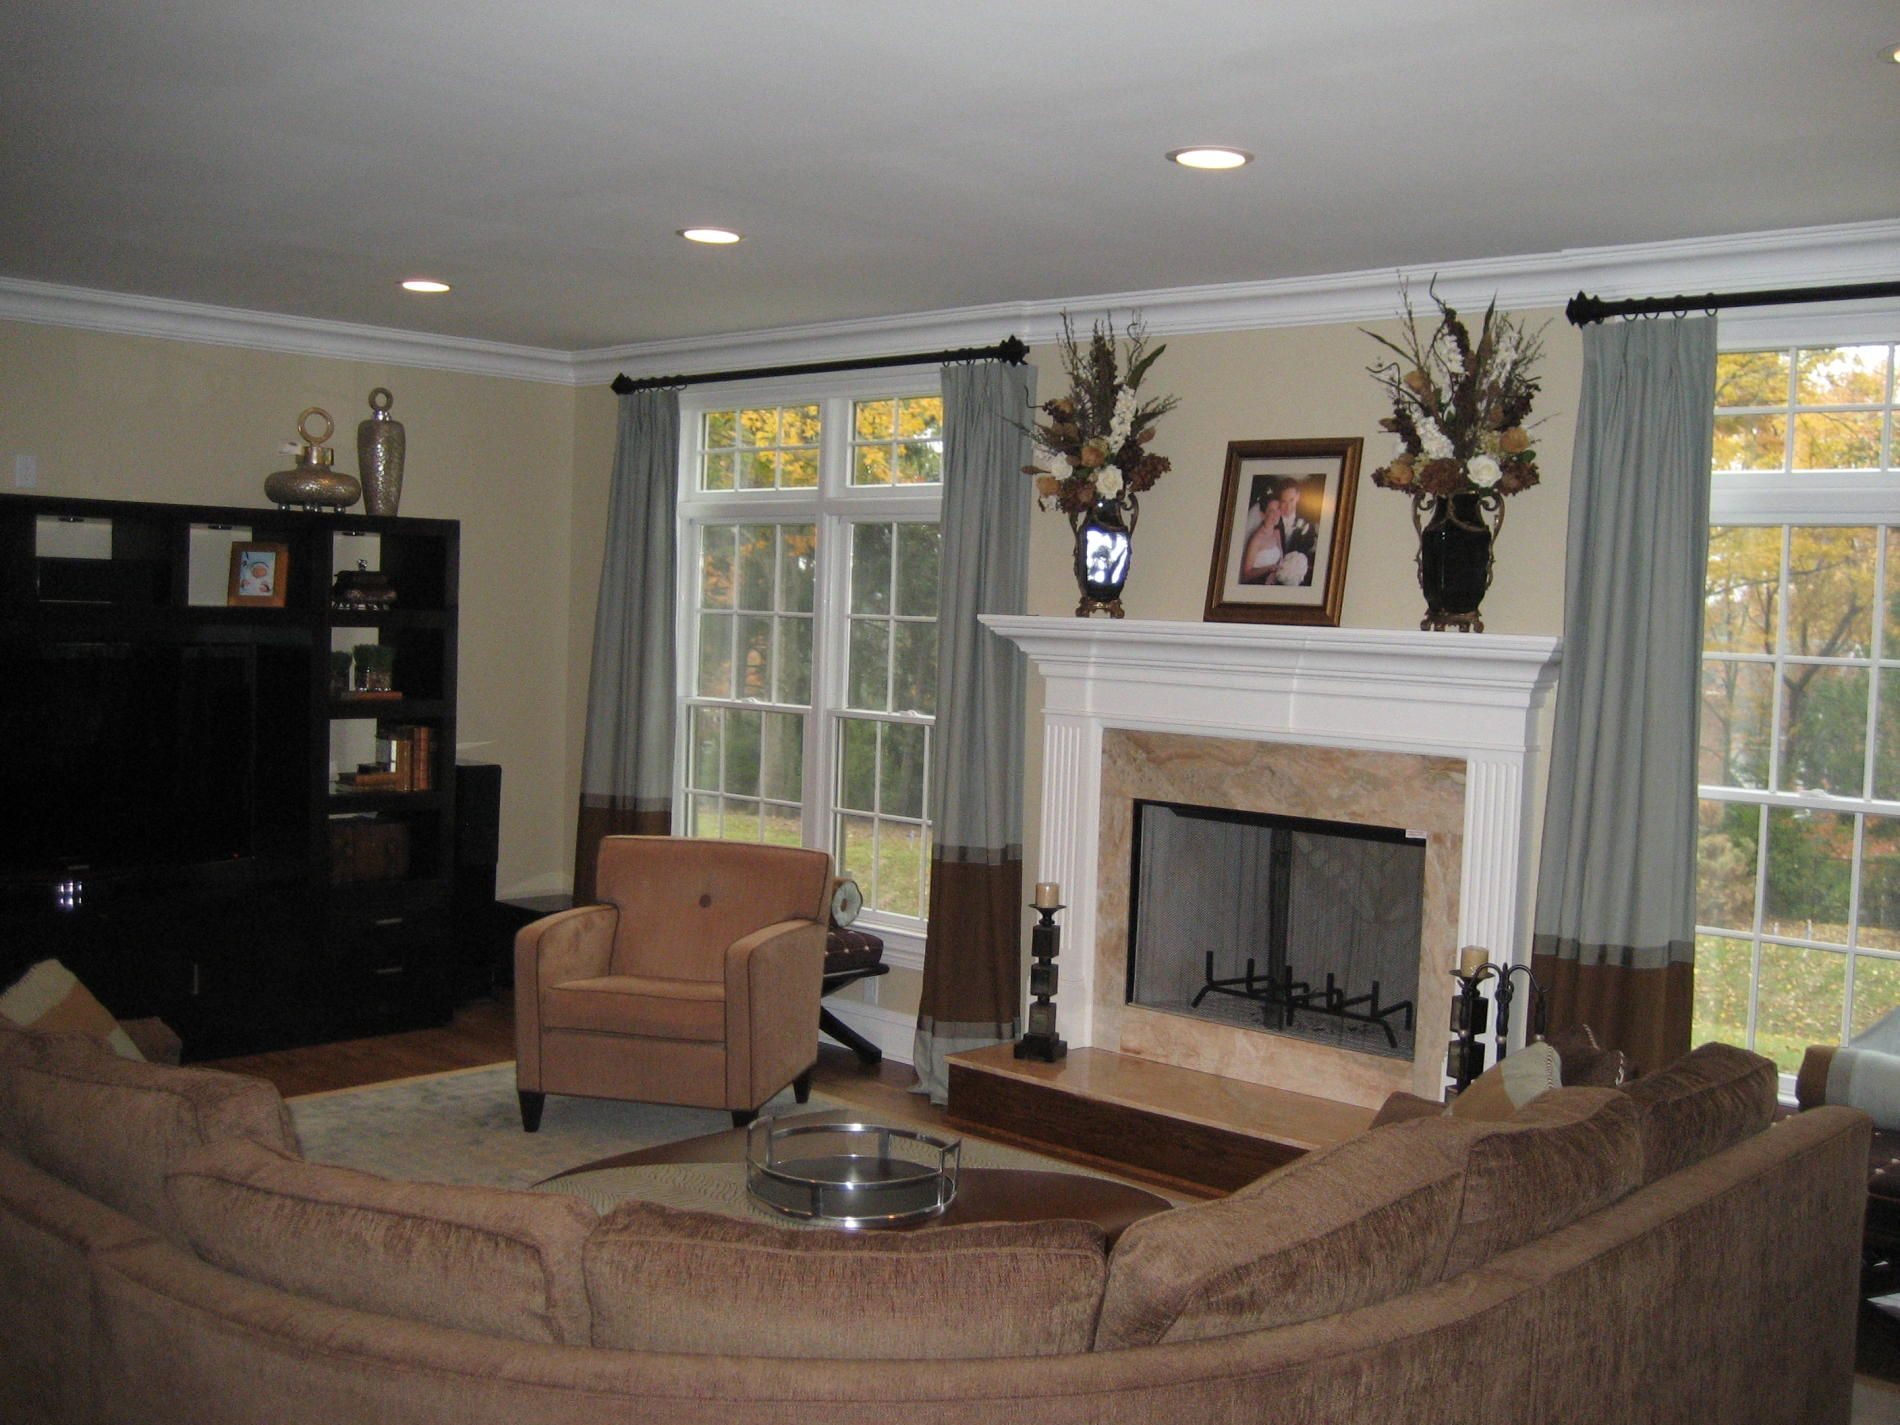 Living Room With Fireplace And Windows fireplace between two windows - google search | kitchen